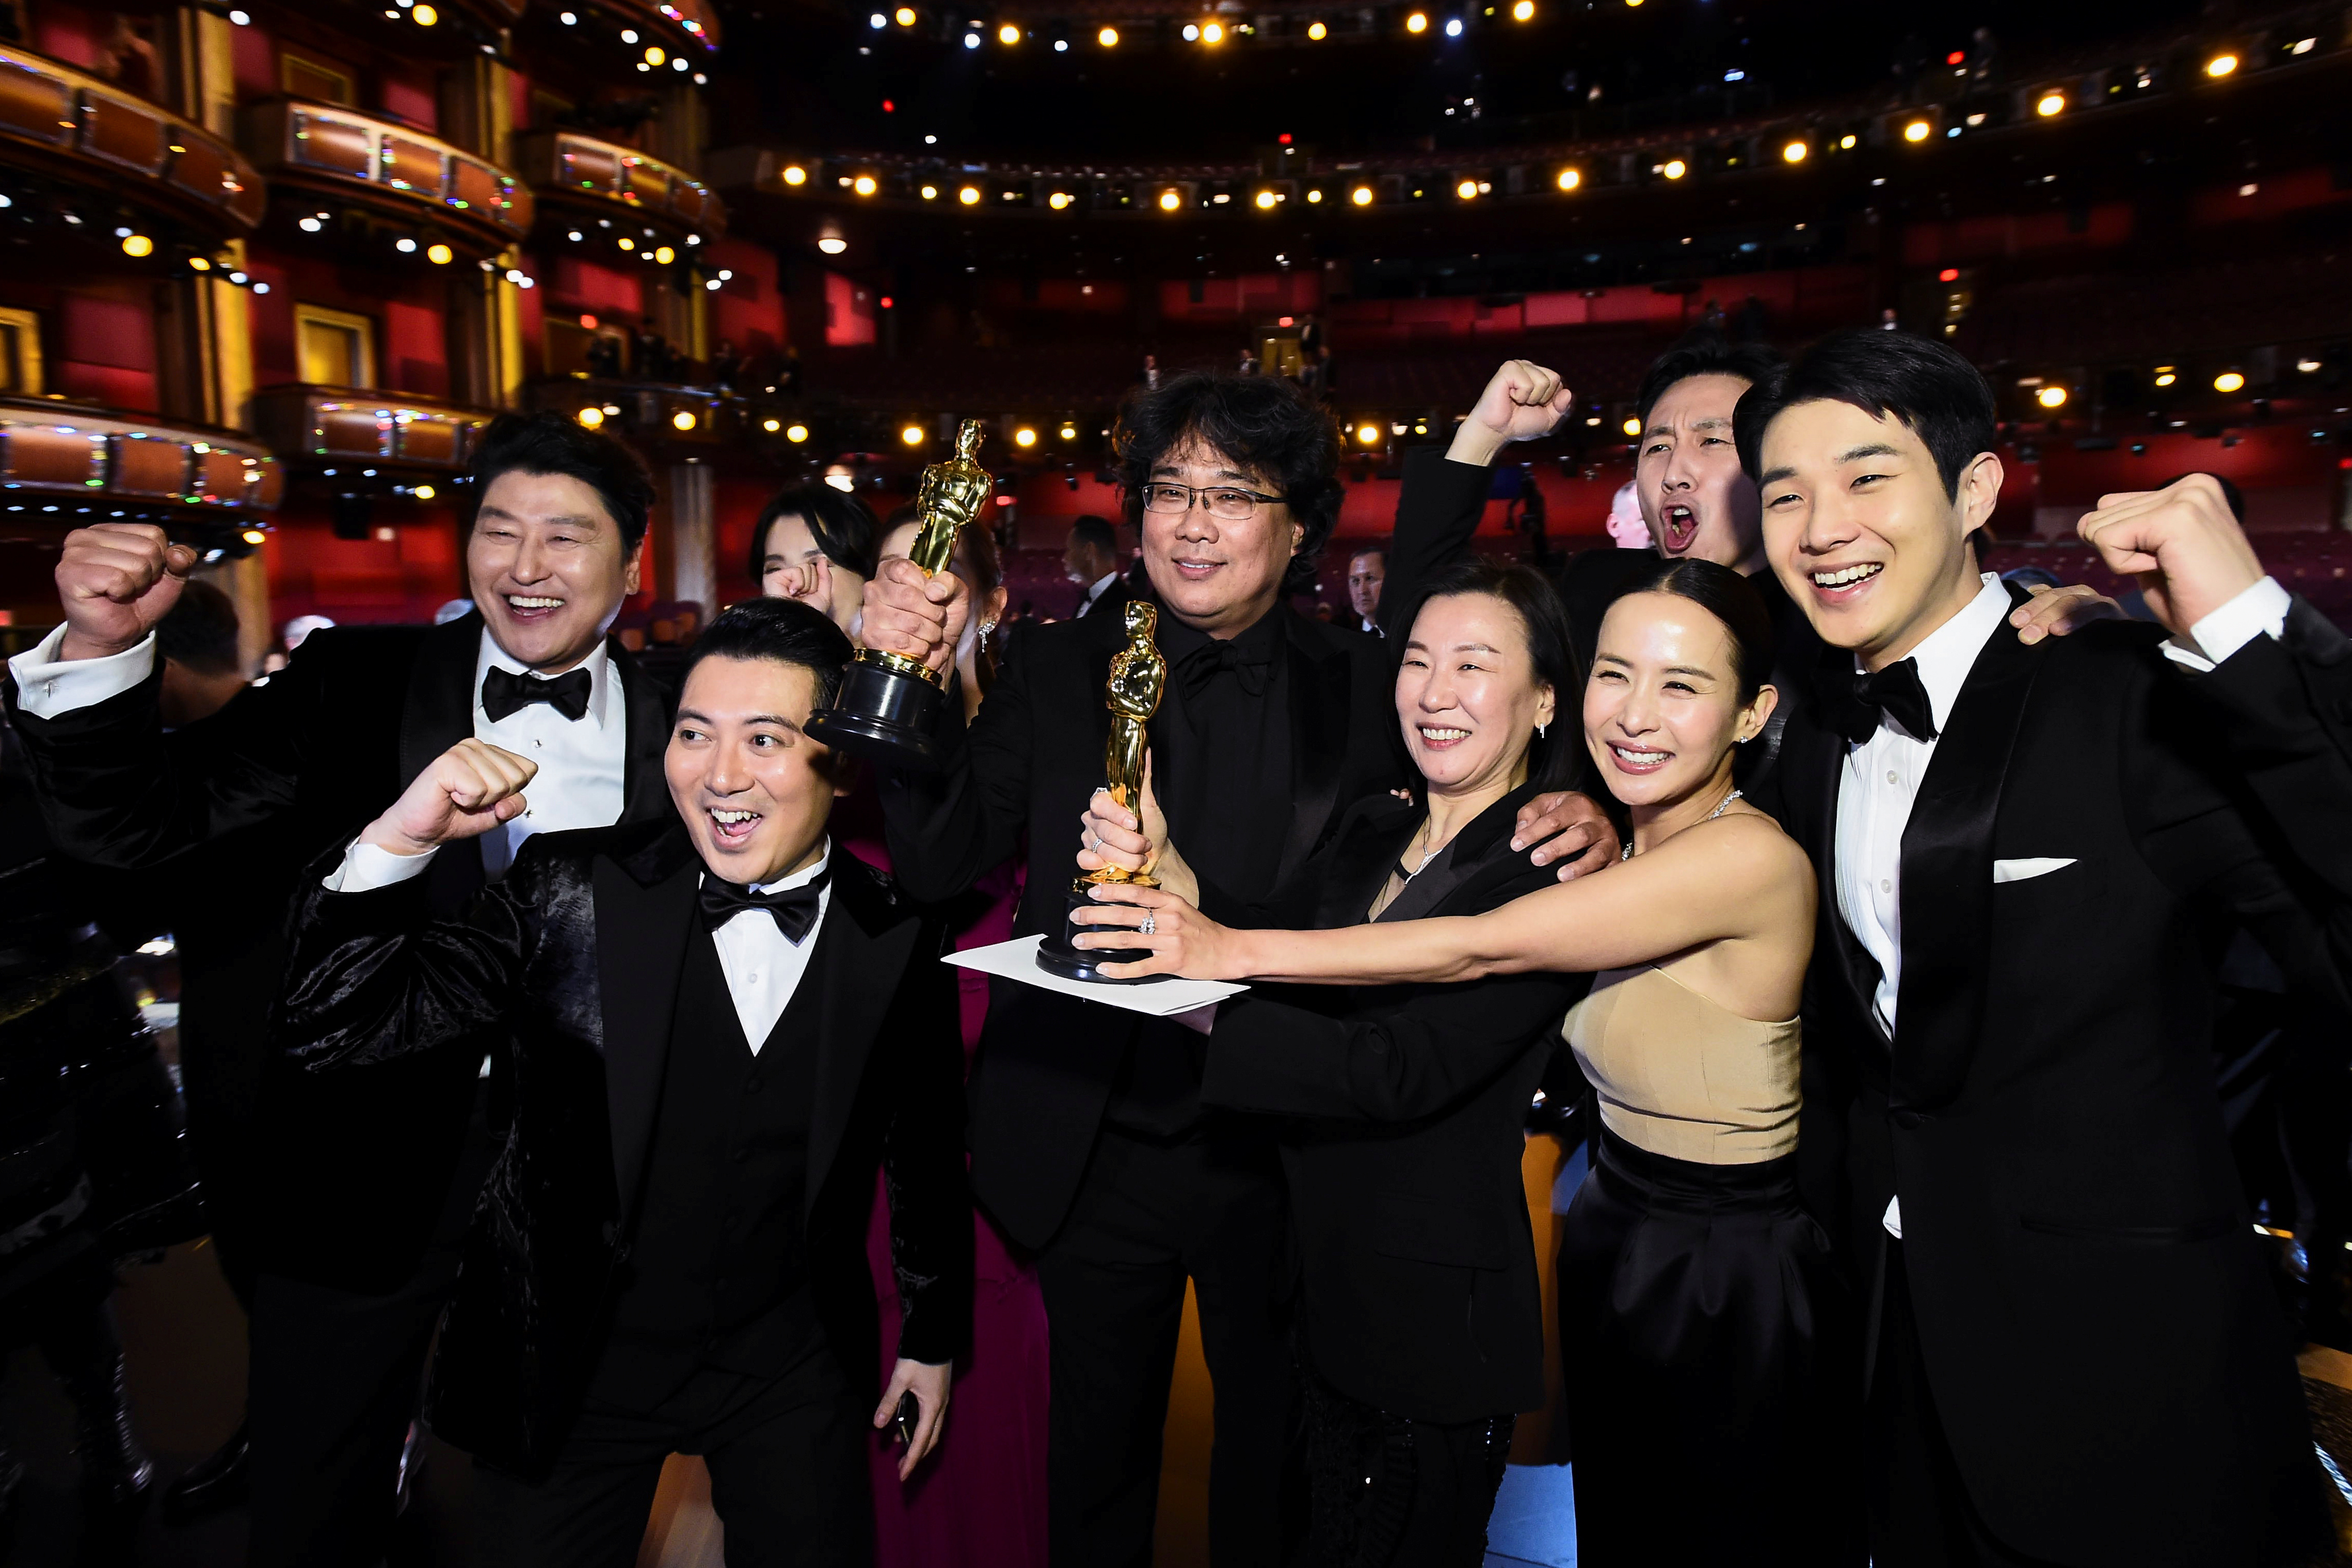 """Bong Joon Ho and the cast of """"Parasite"""" pose at the 92nd Academy Awards in Hollywood, Los Angeles, California, U.S., February 9, 2020. Matt Petit/A.M.P.A.S./Handout via REUTERS ATTENTION EDITORS. THIS IMAGE HAS BEEN SUPPLIED BY A THIRD PARTY. NO MARKETING OR ADVERTISING IS PERMITTED WITHOUT THE PRIOR CONSENT OF A.M.P.A.S AND MUST BE DISTRIBUTED AS SUCH. MANDATORY CREDIT."""